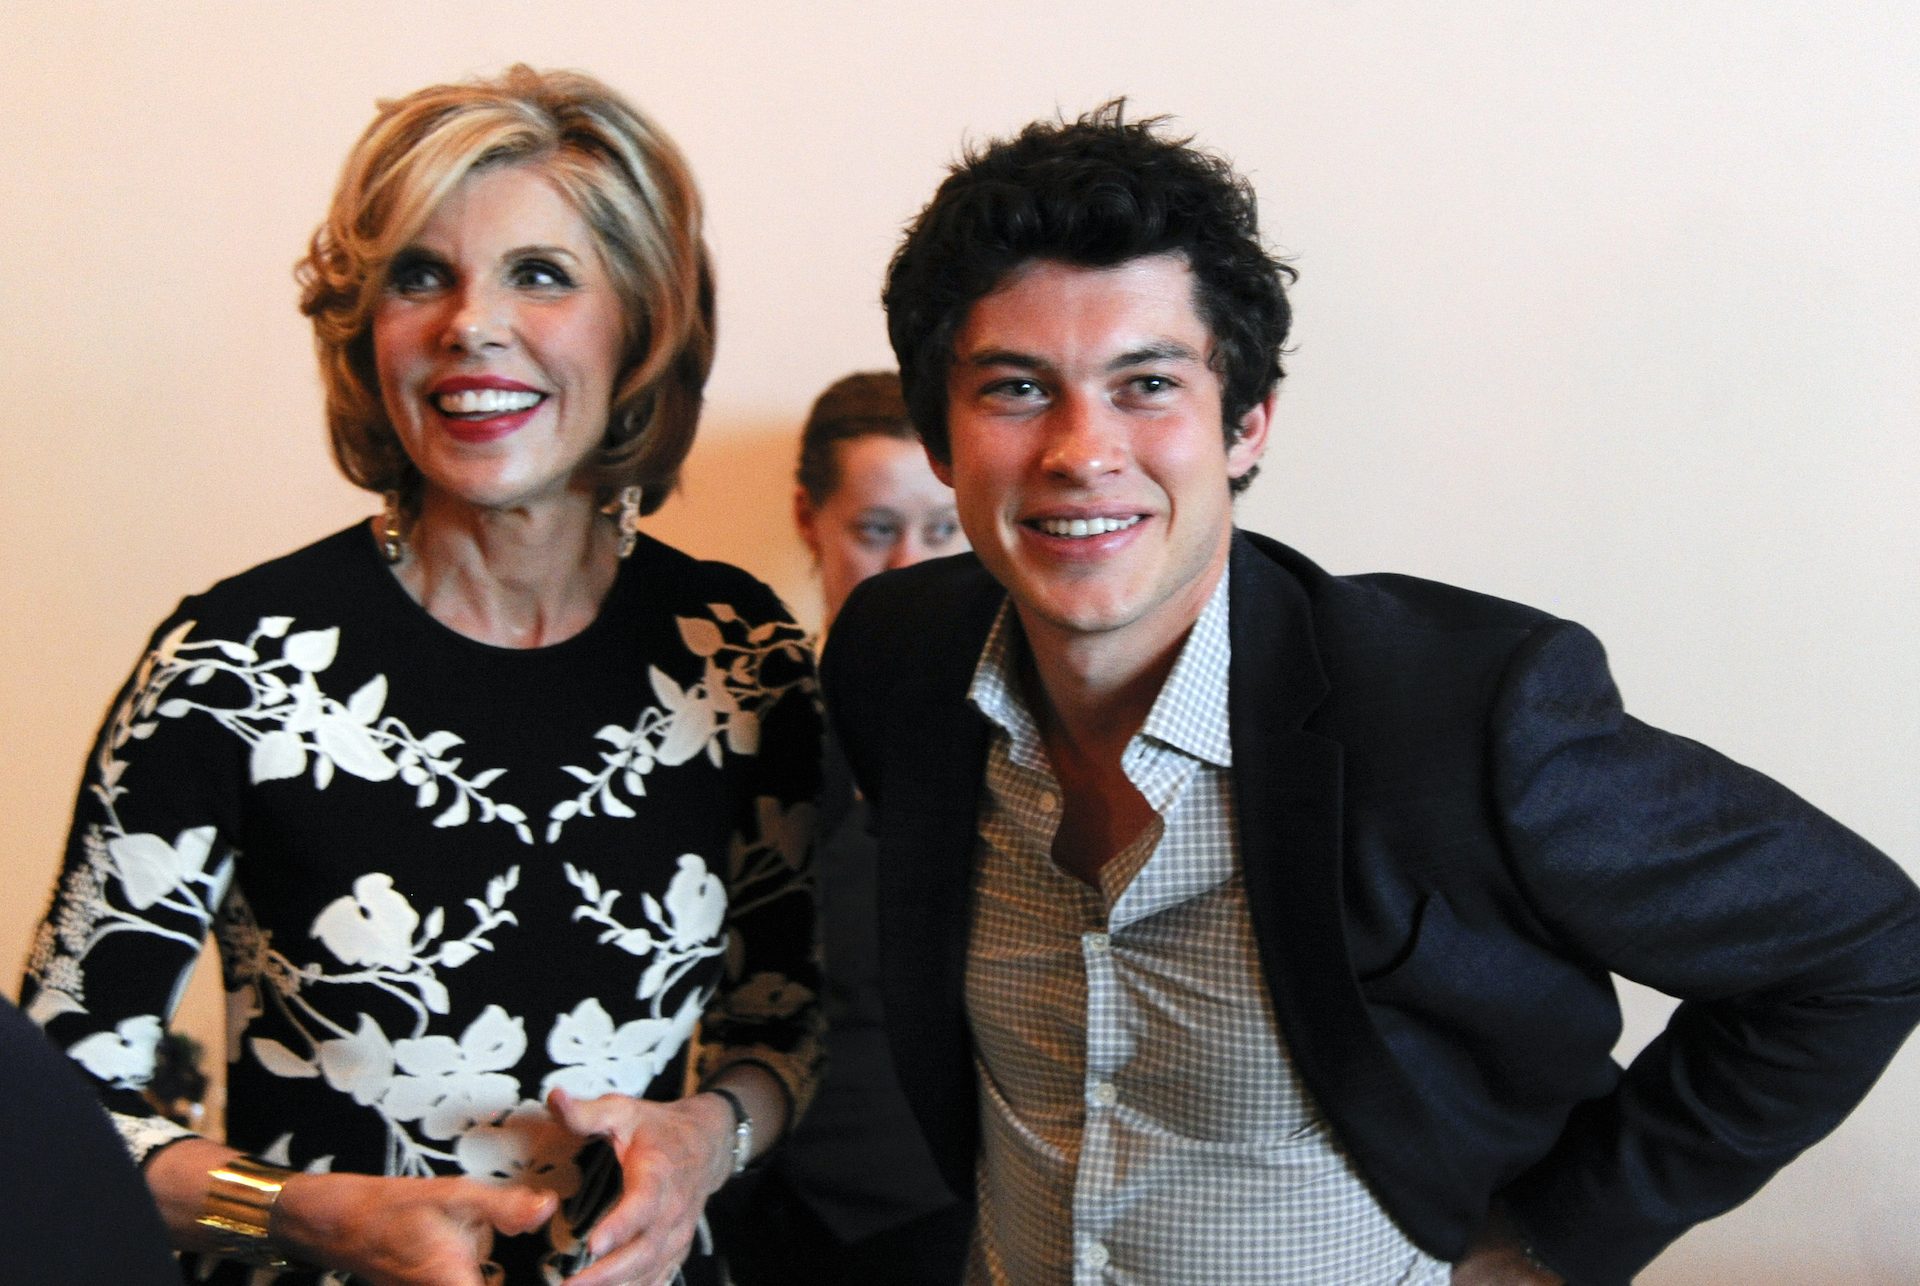 Christine Baranski and Graham Phillips